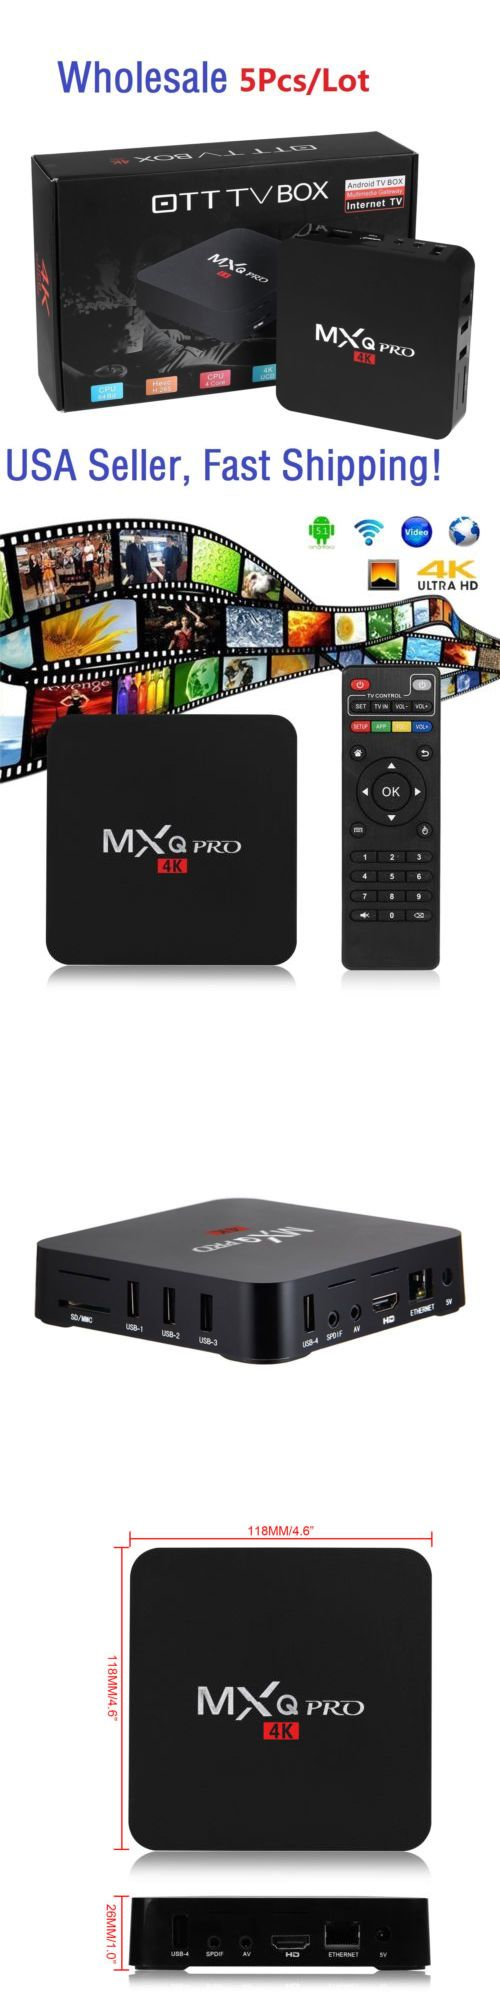 Cable TV Boxes: 5Pcs Mxq Pro 4K S905 Smart Tv Box 64Bit Quad Core Android 5.1 Free Movies 1G+8G -> BUY IT NOW ONLY: $160 on eBay!